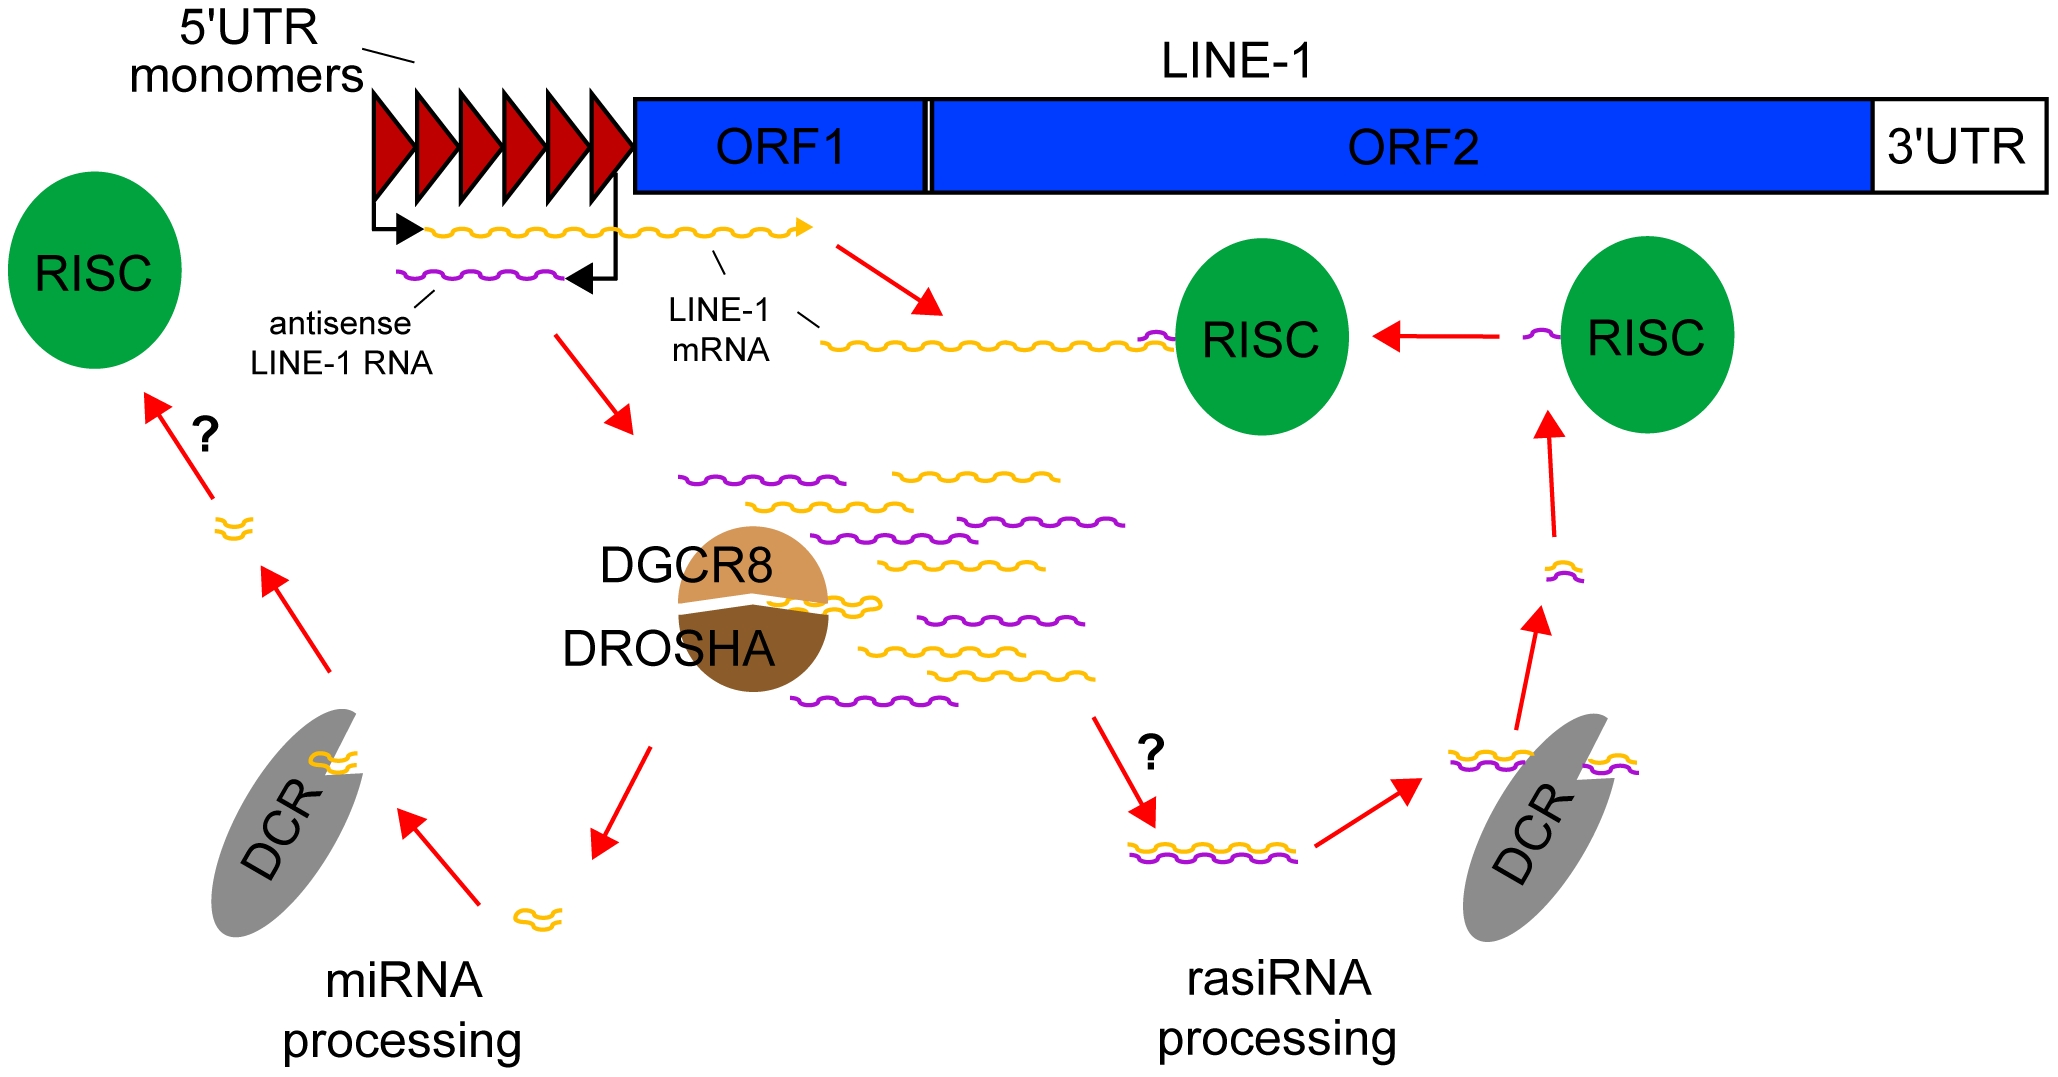 rasiRNAs inhibit LINE-1 expression in mESCs.